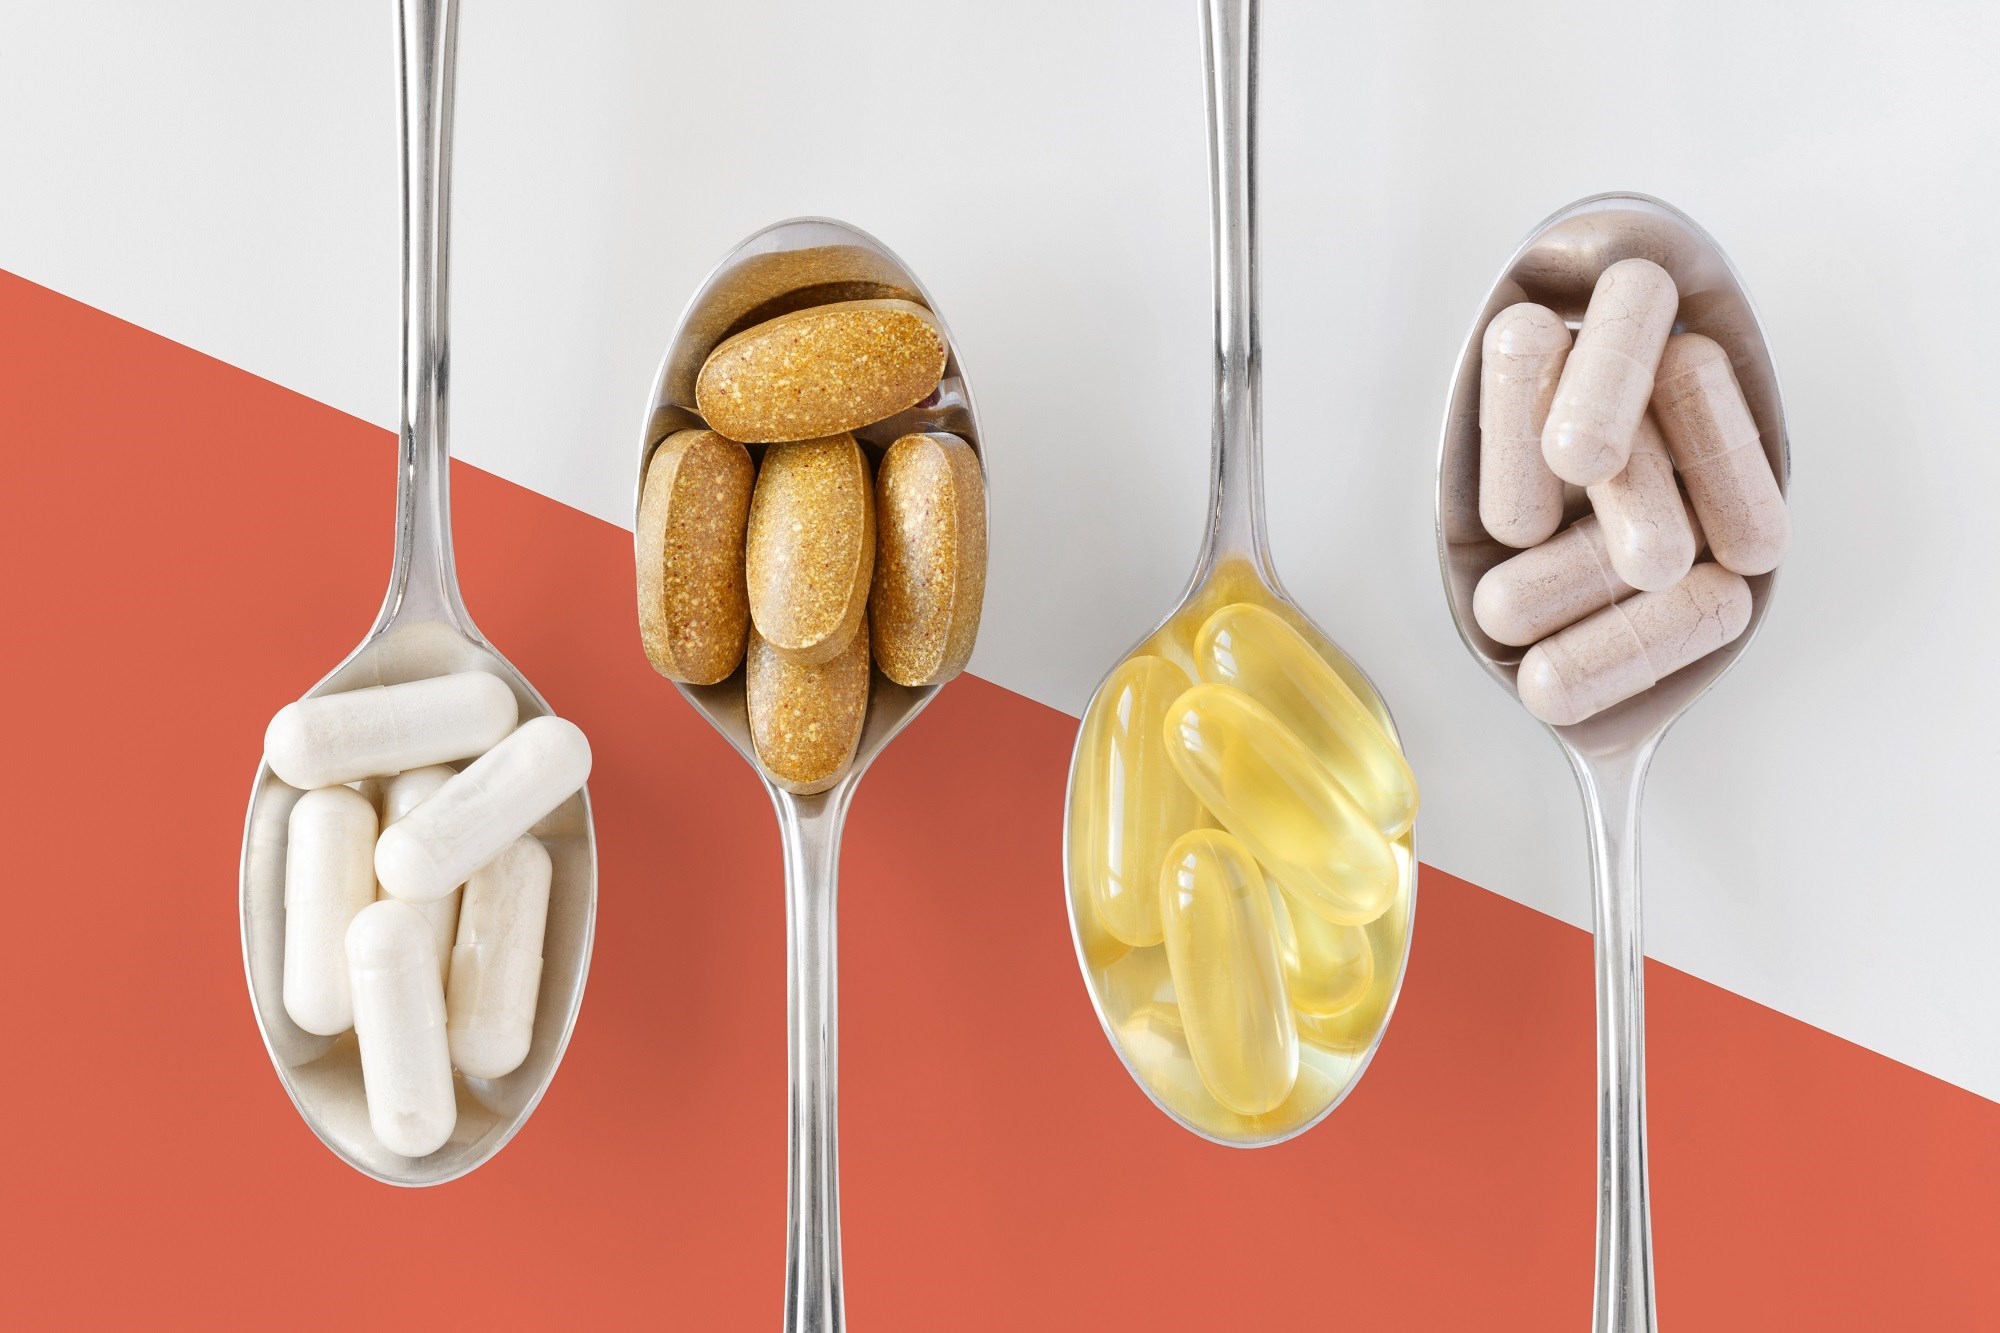 Academy of Nutrition and Dietetics Does Not Recommend Routine Supplements for Chronic Disease Prevention